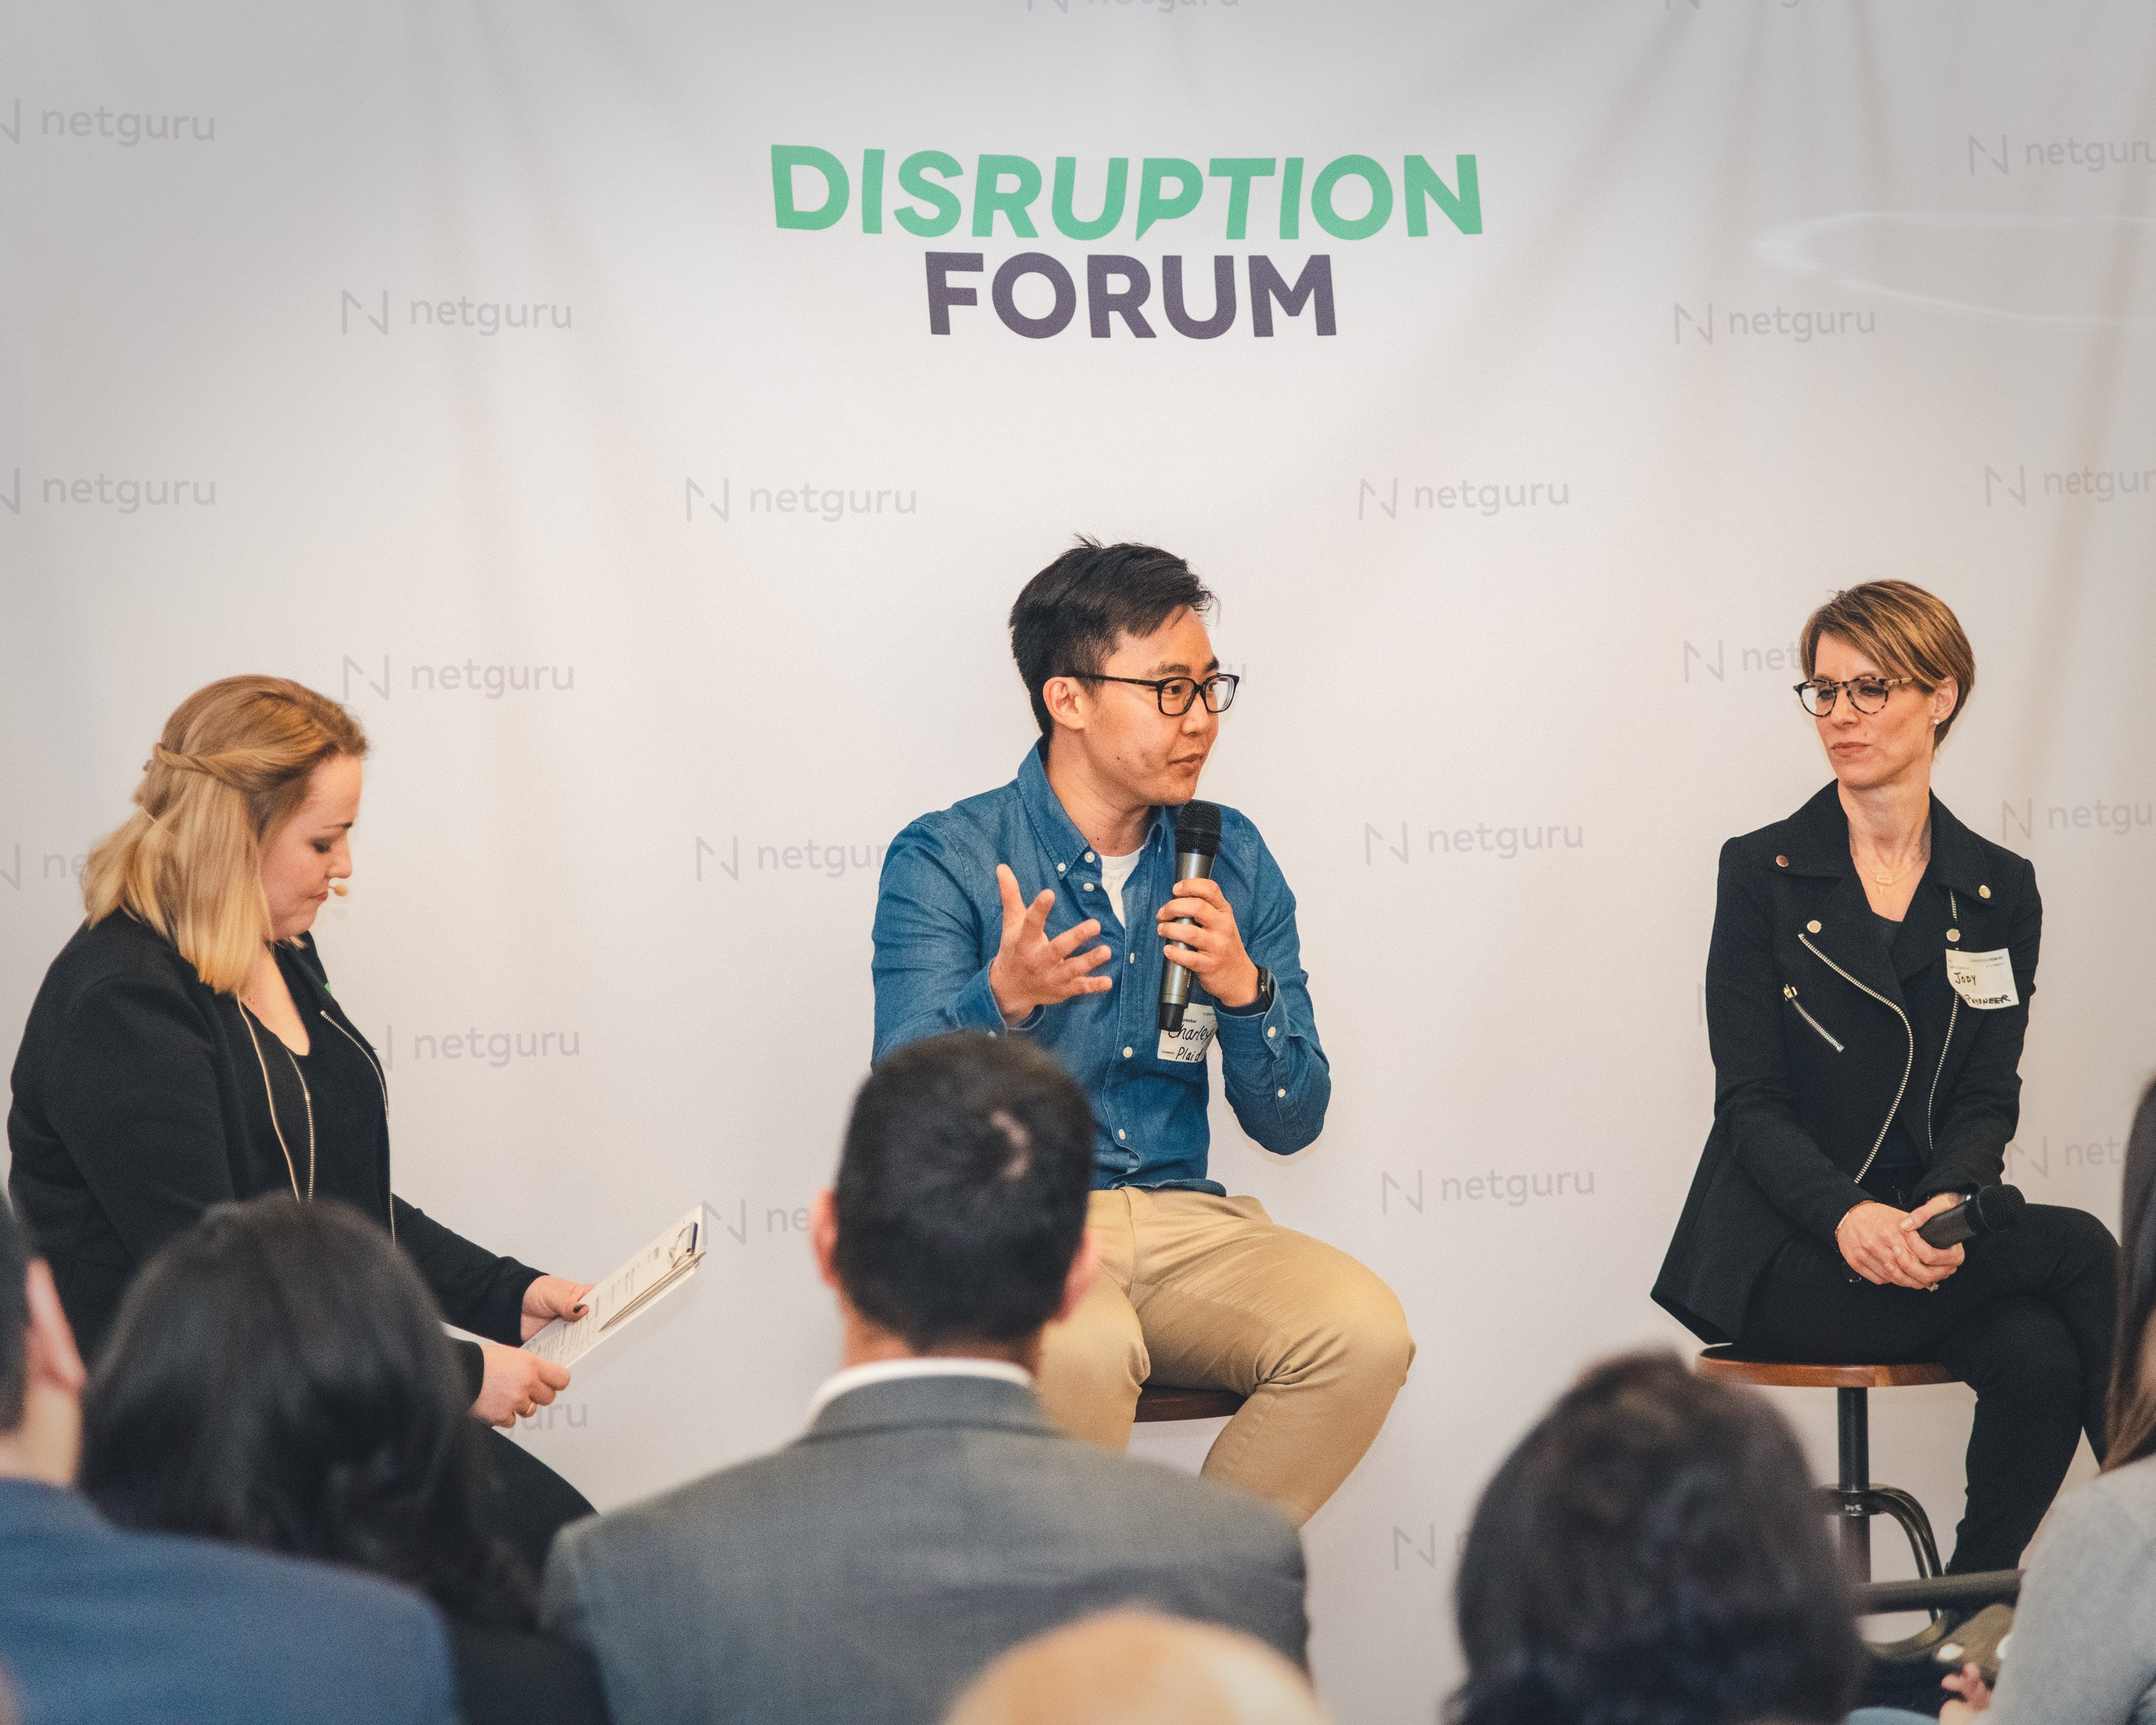 Disruption Forum NYC - Netguru, Plaid, Payoneer